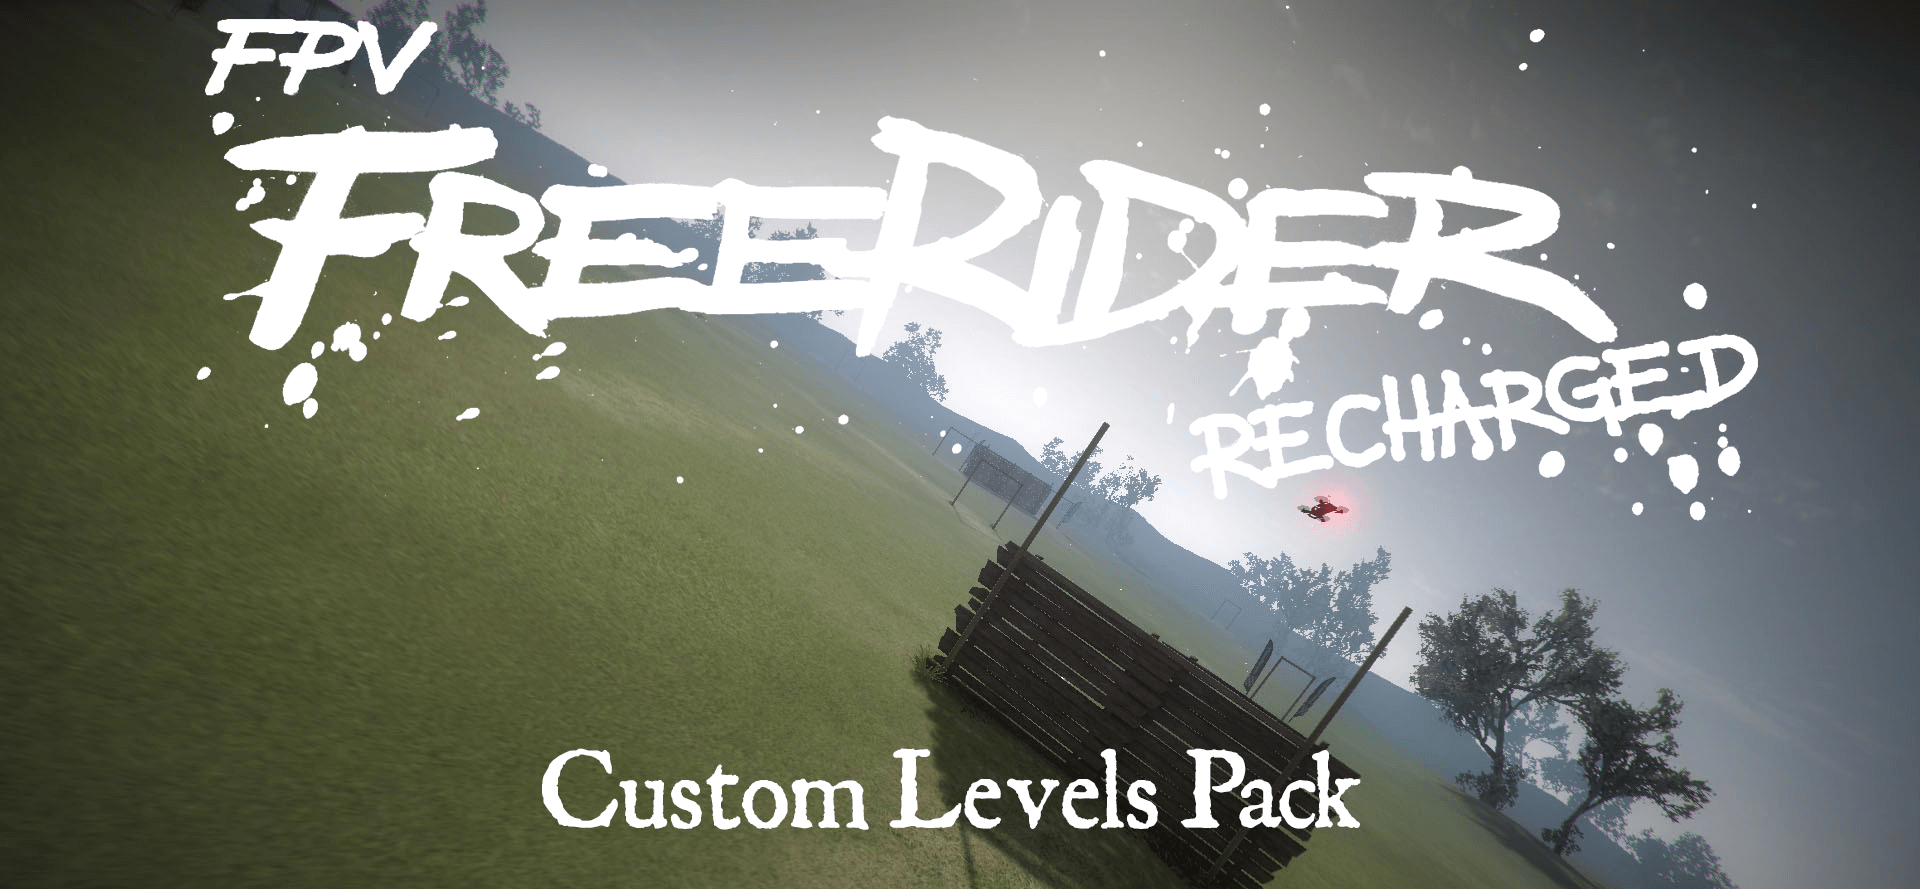 FPV Freerider Recharged Custom Maps Pack Logo